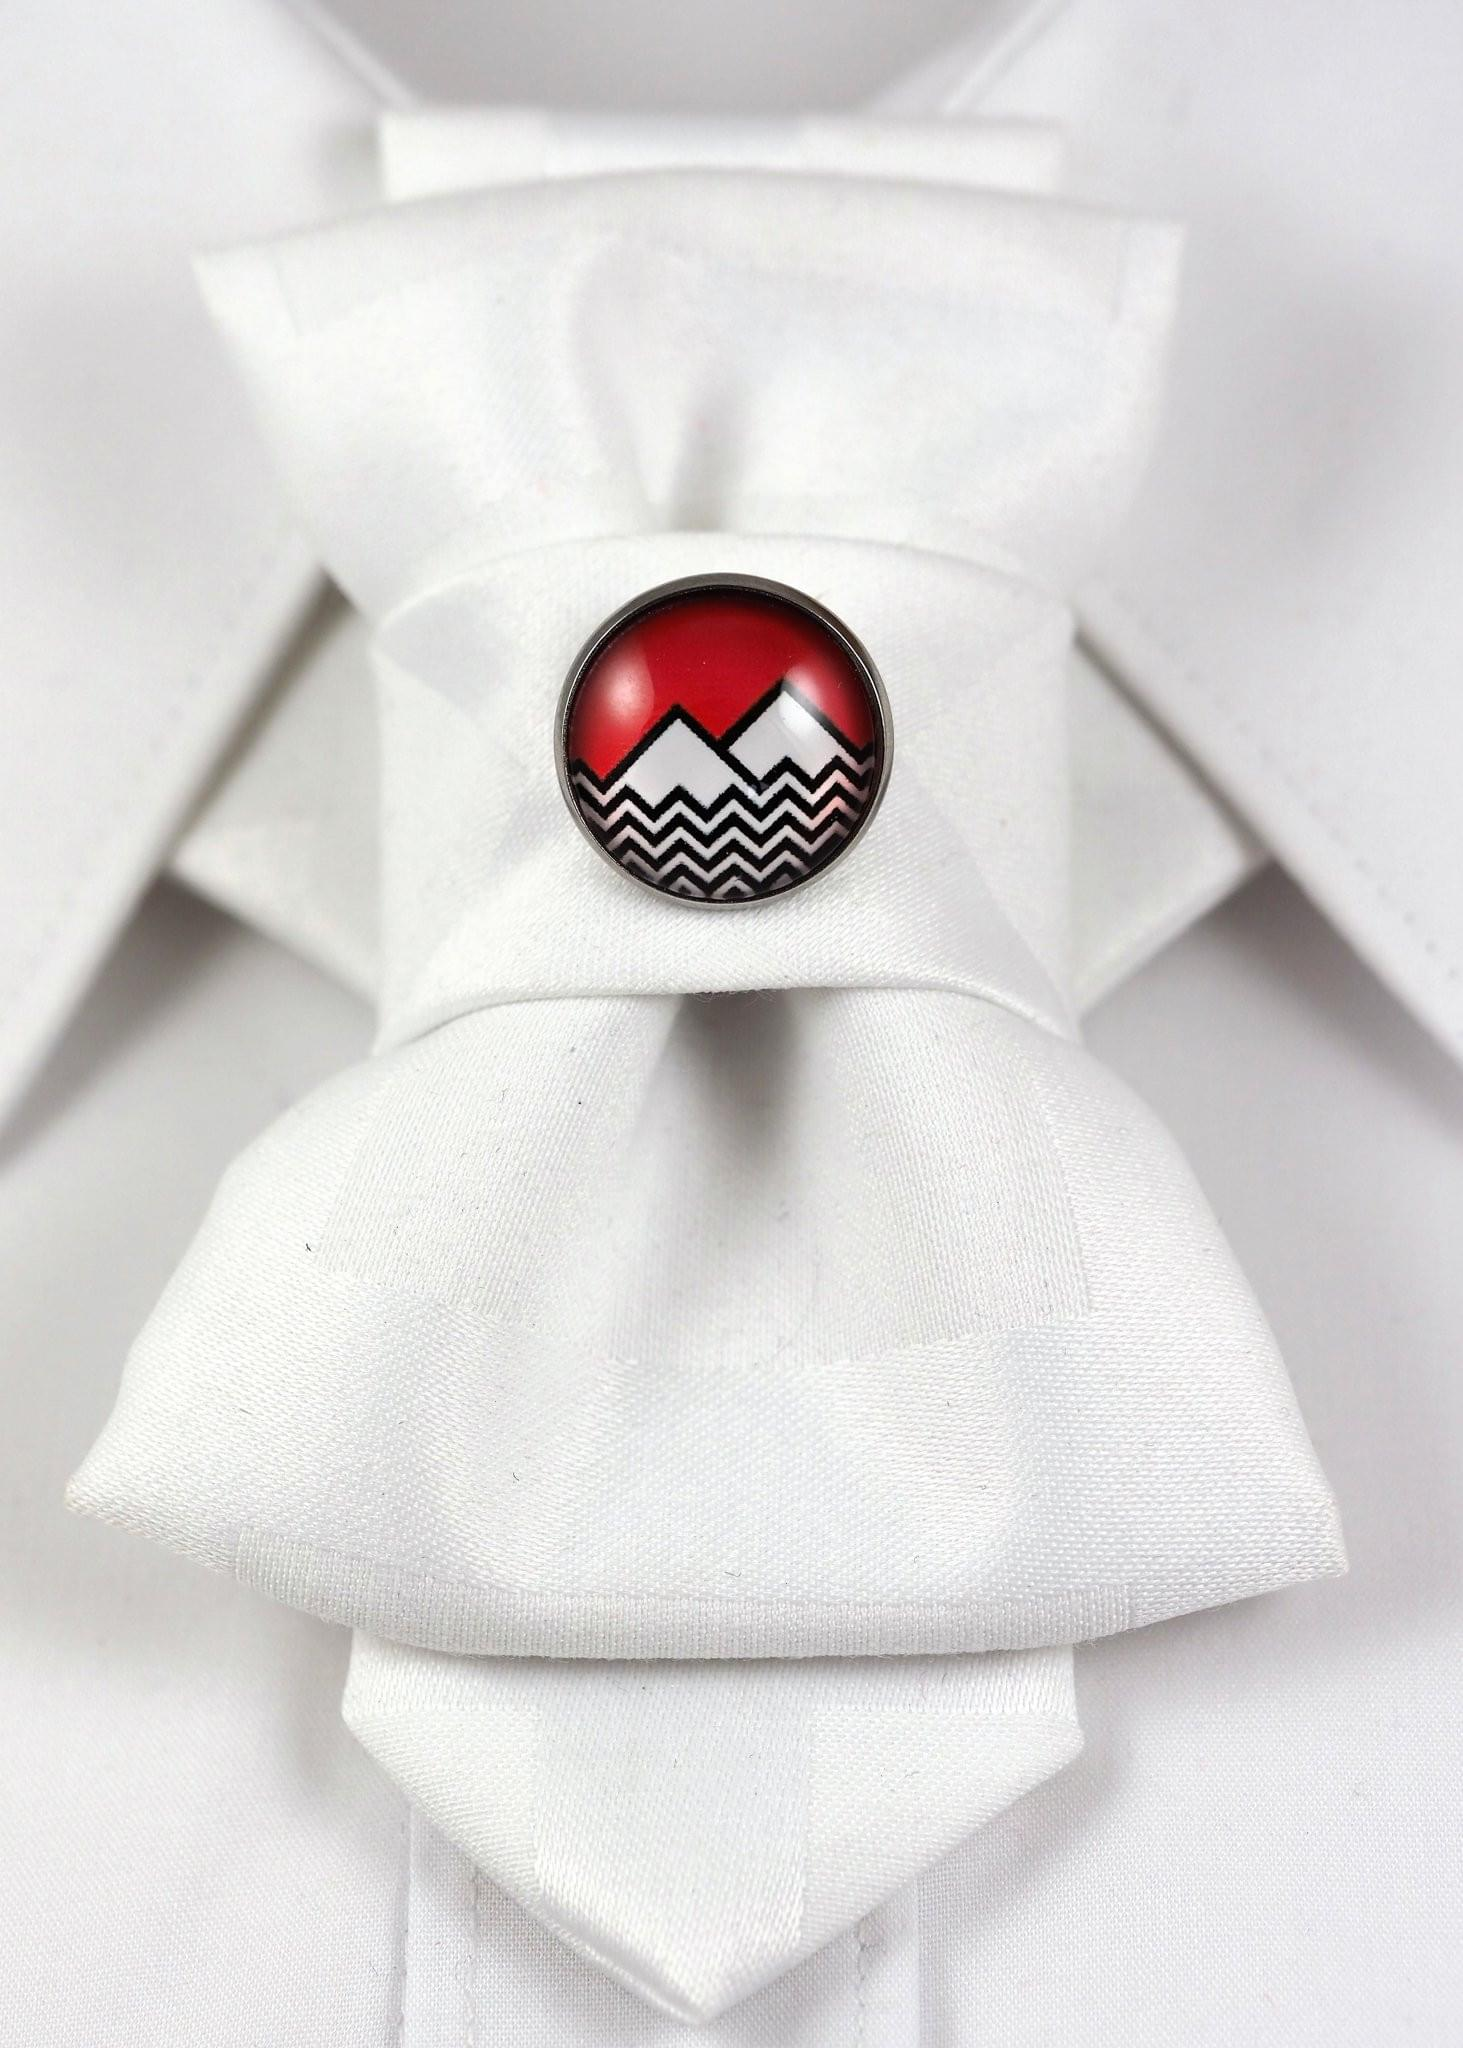 Bow Tie, Tie for wedding suite BADGE - MOUNTAINS hopper tie DECOR ELEMENT